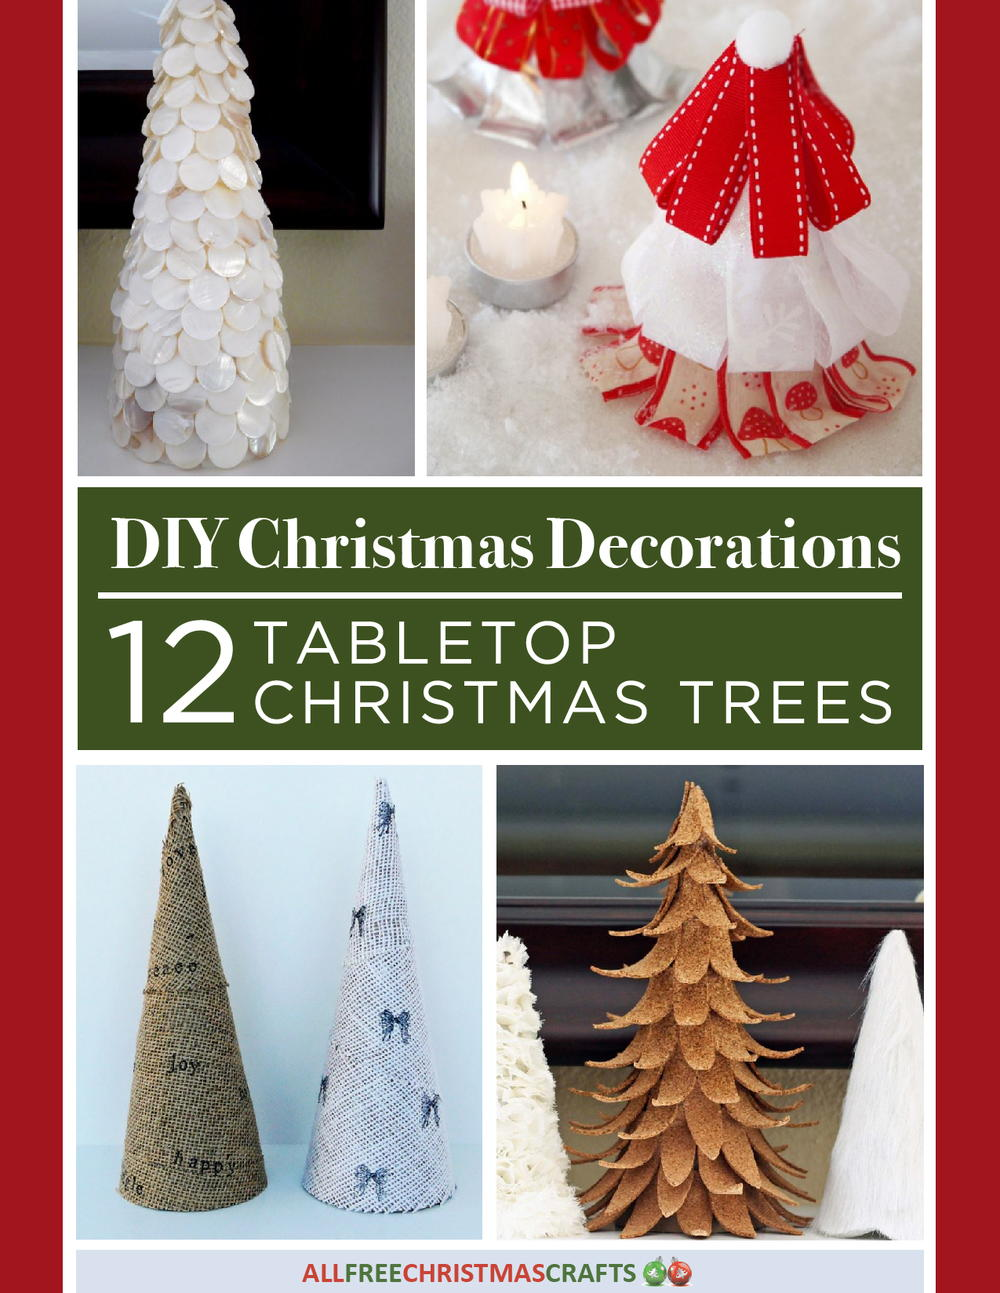 diy christmas decorations 12 tabletop christmas trees free ebook allfreechristmascraftscom